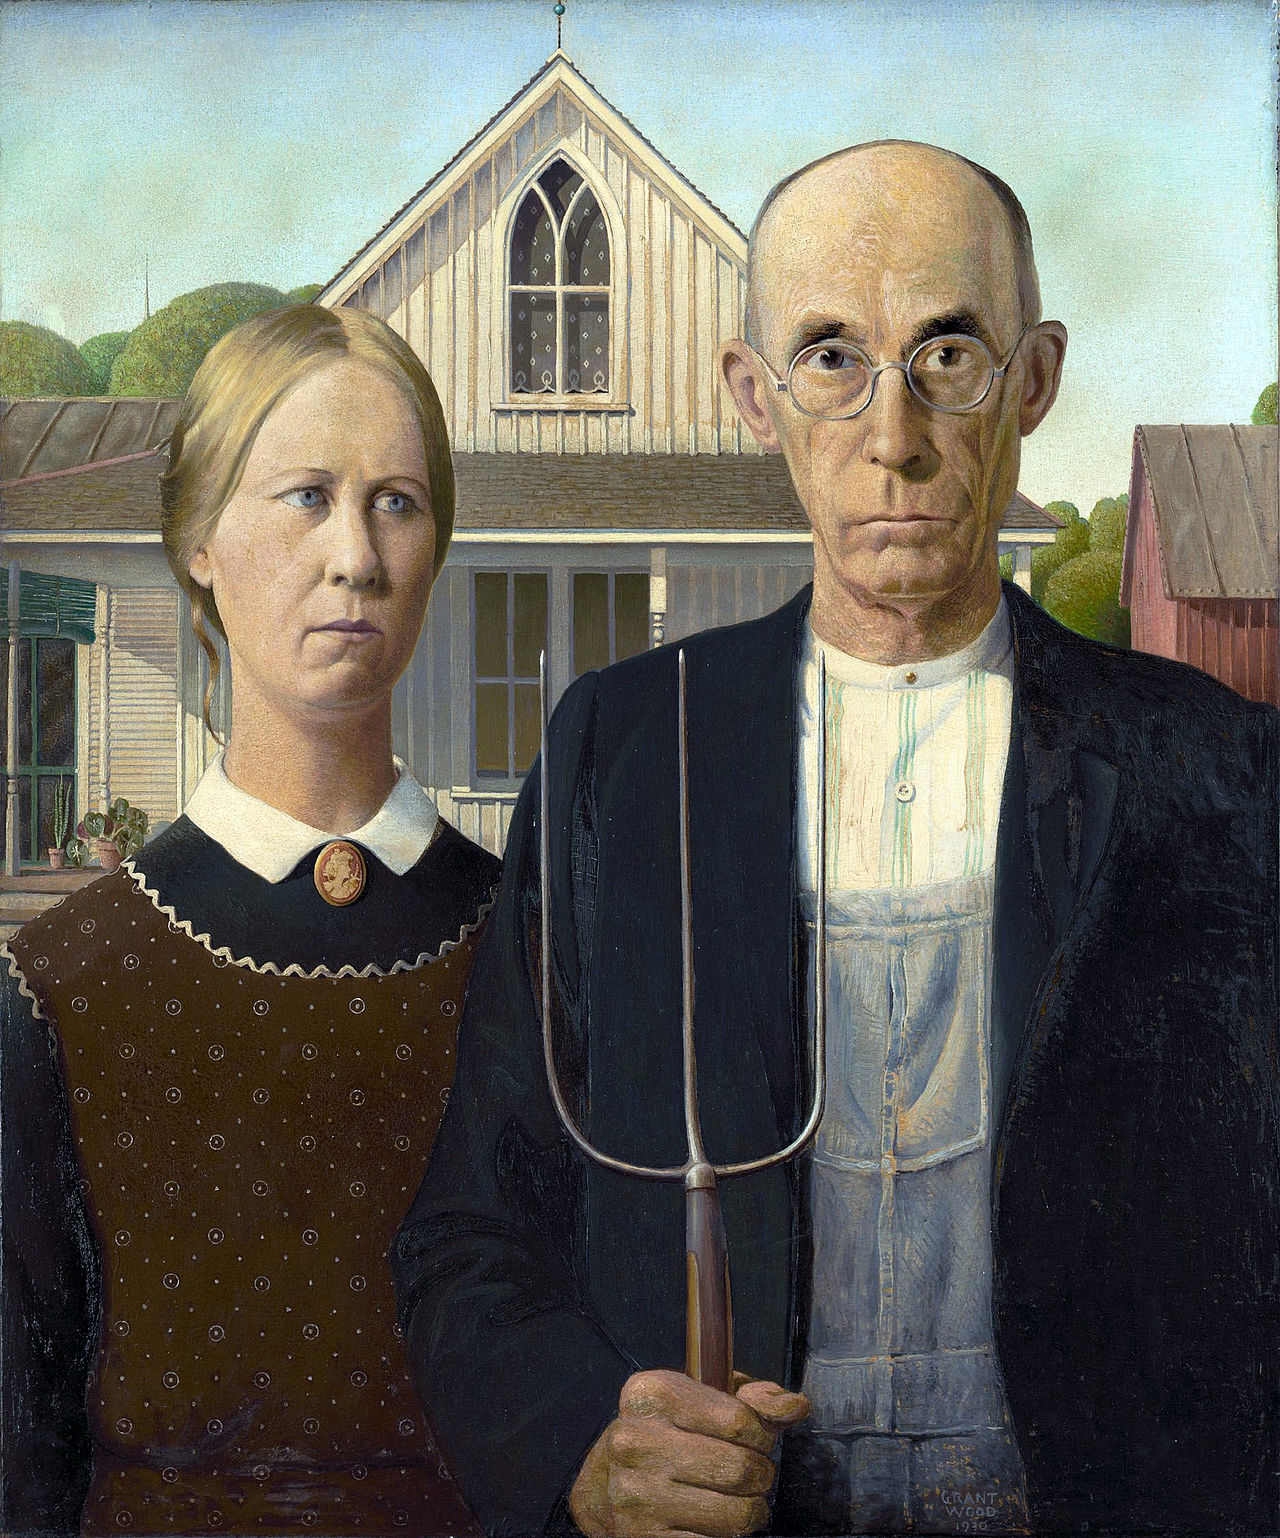 13. American Gothic - Grant Wood (1930) - Art Institute, Chicago